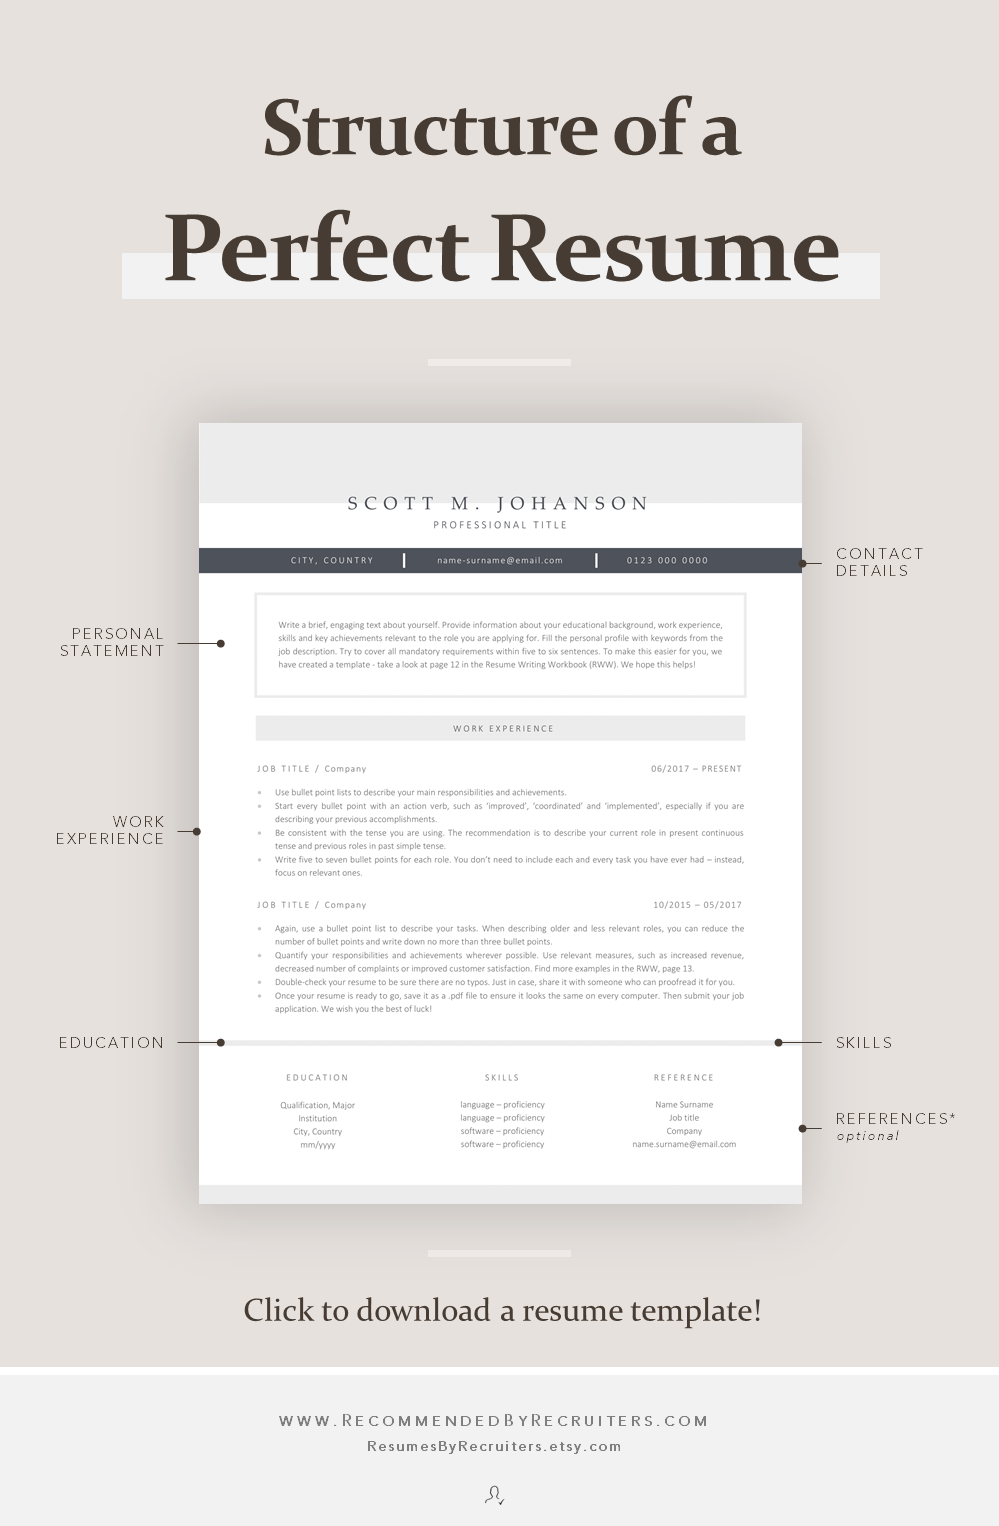 Structure of a Perfect Resume, How to Structure CV, Main